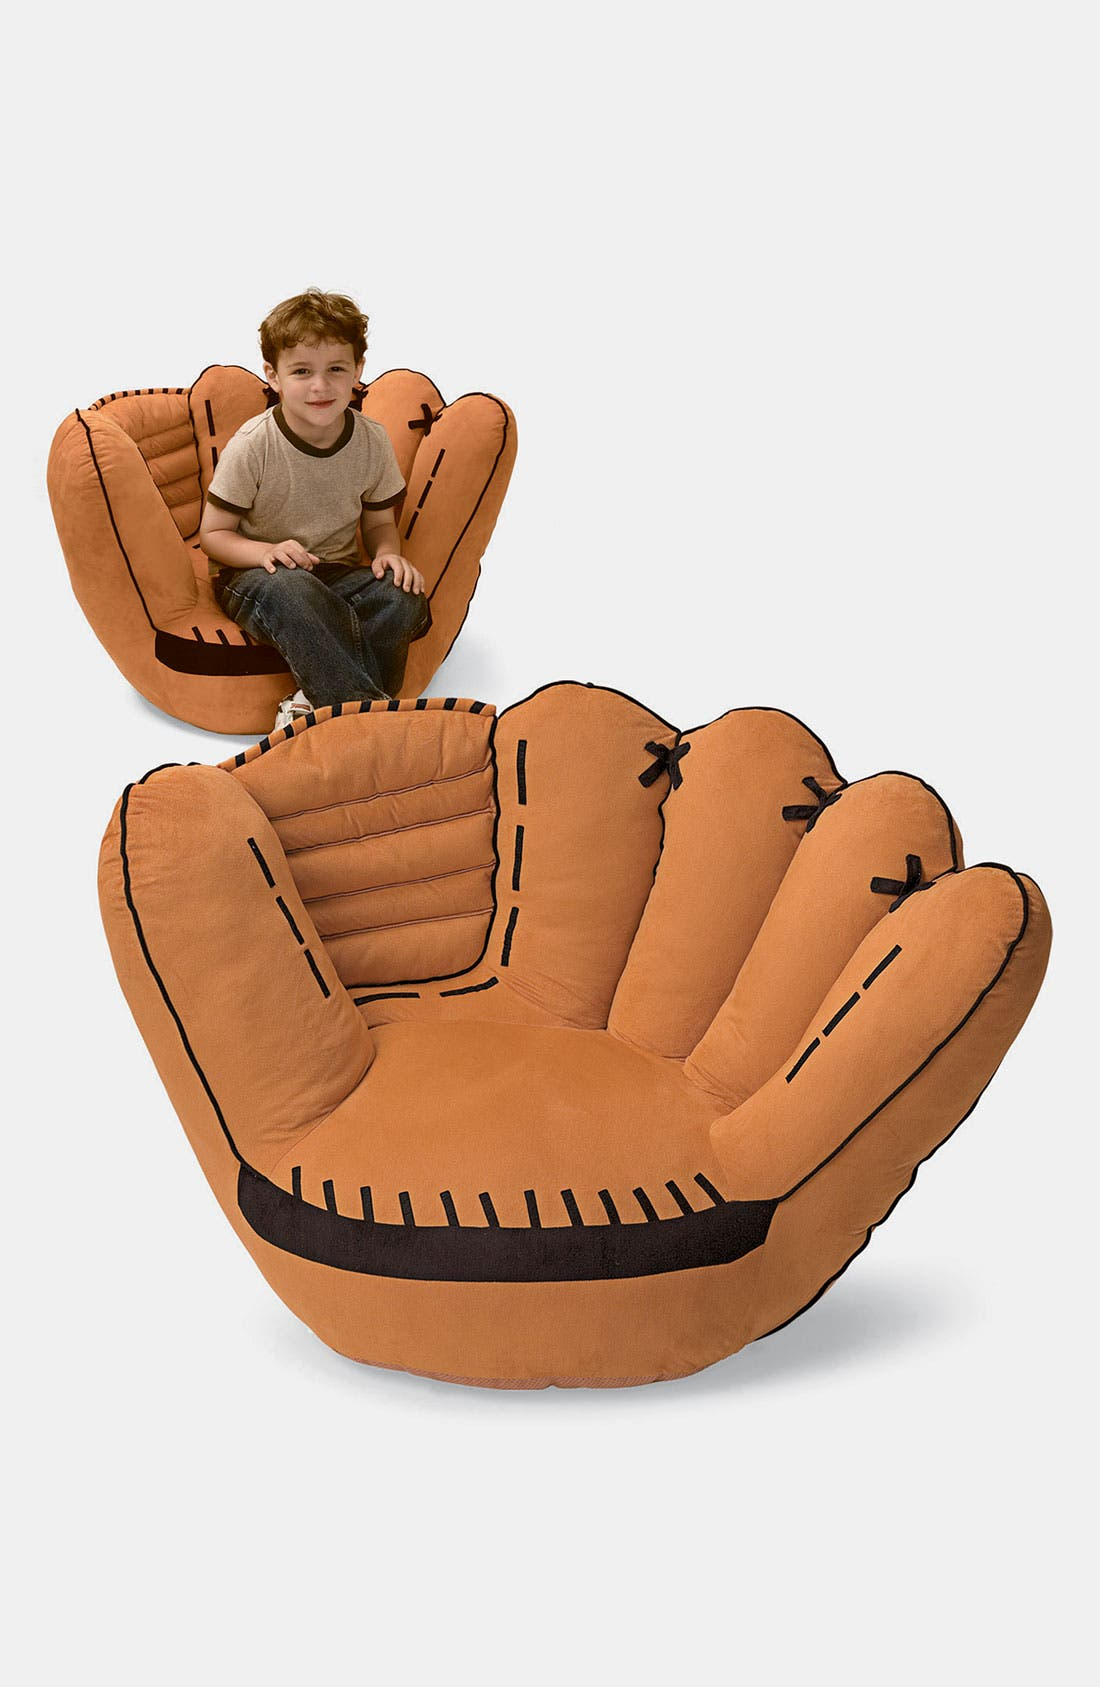 Alternate Image 1 Selected - Gund 'All Star' Sports Chair (Toddler)